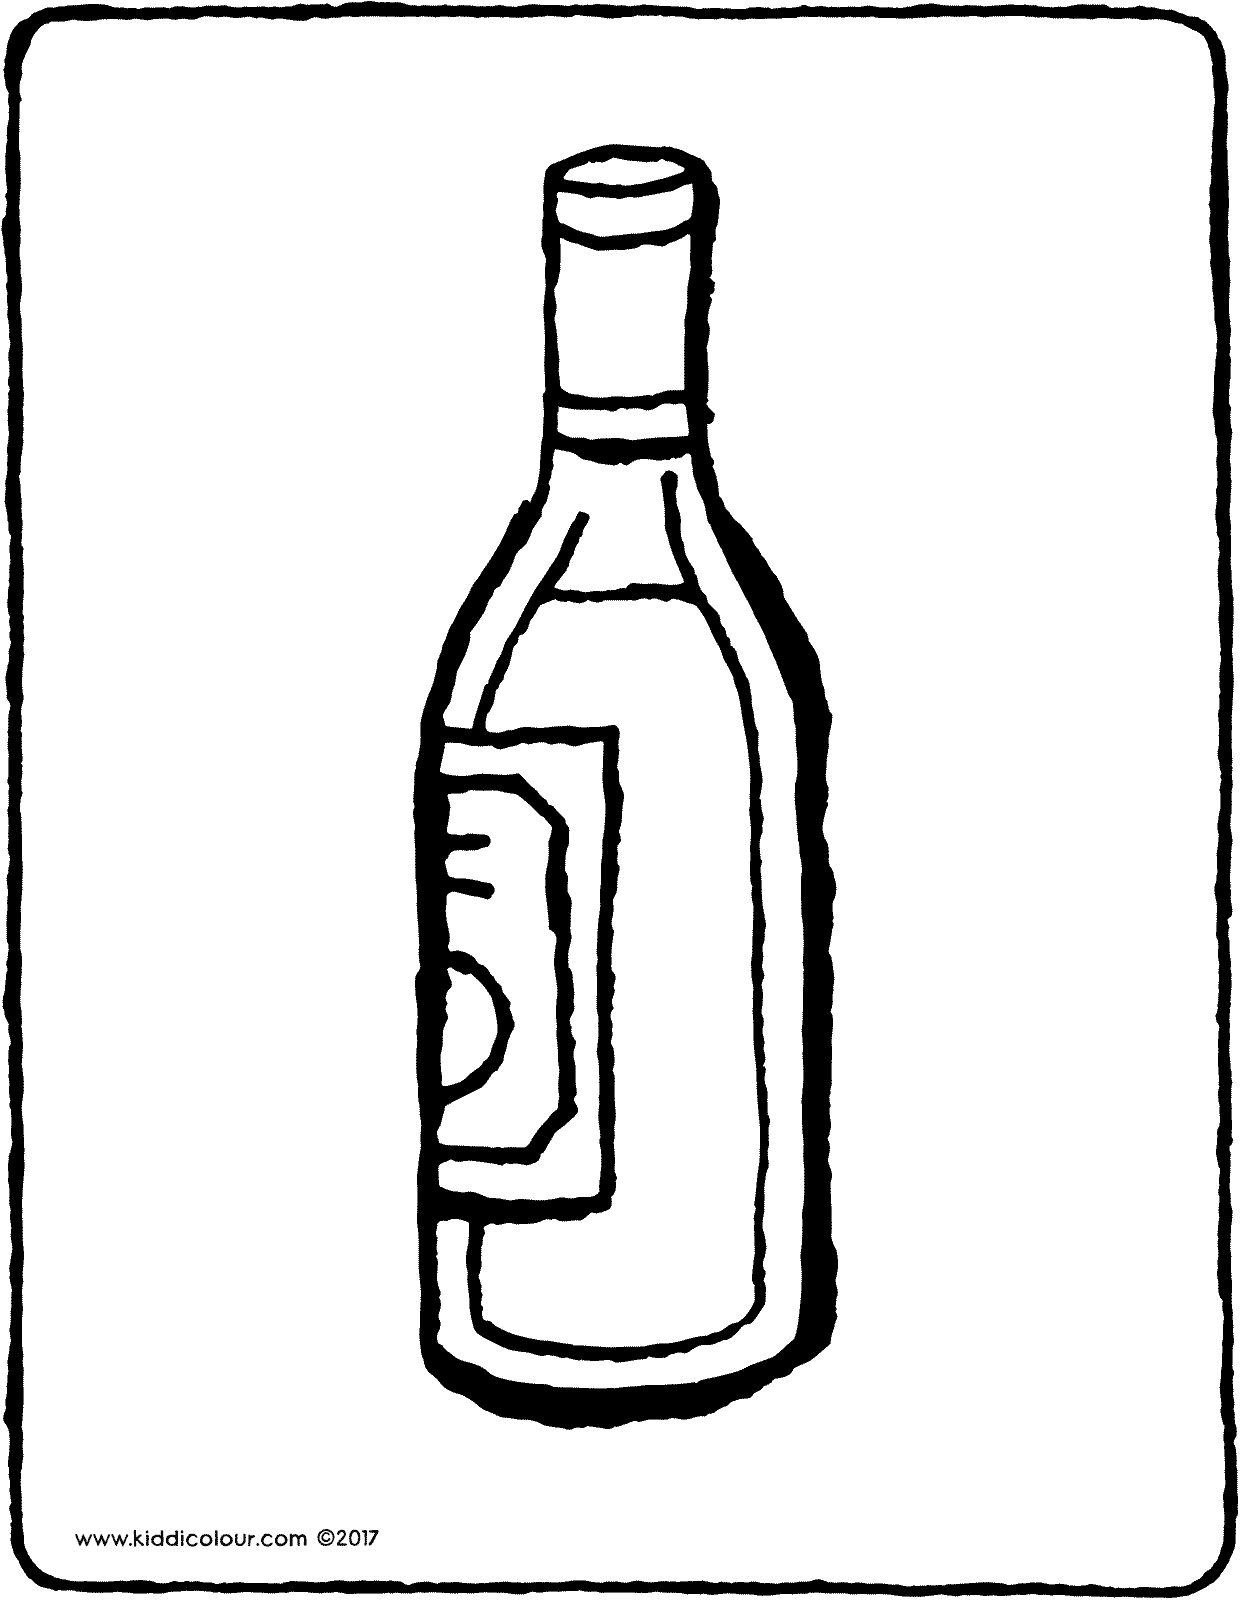 bottle of wine colouring page drawing picture 01V